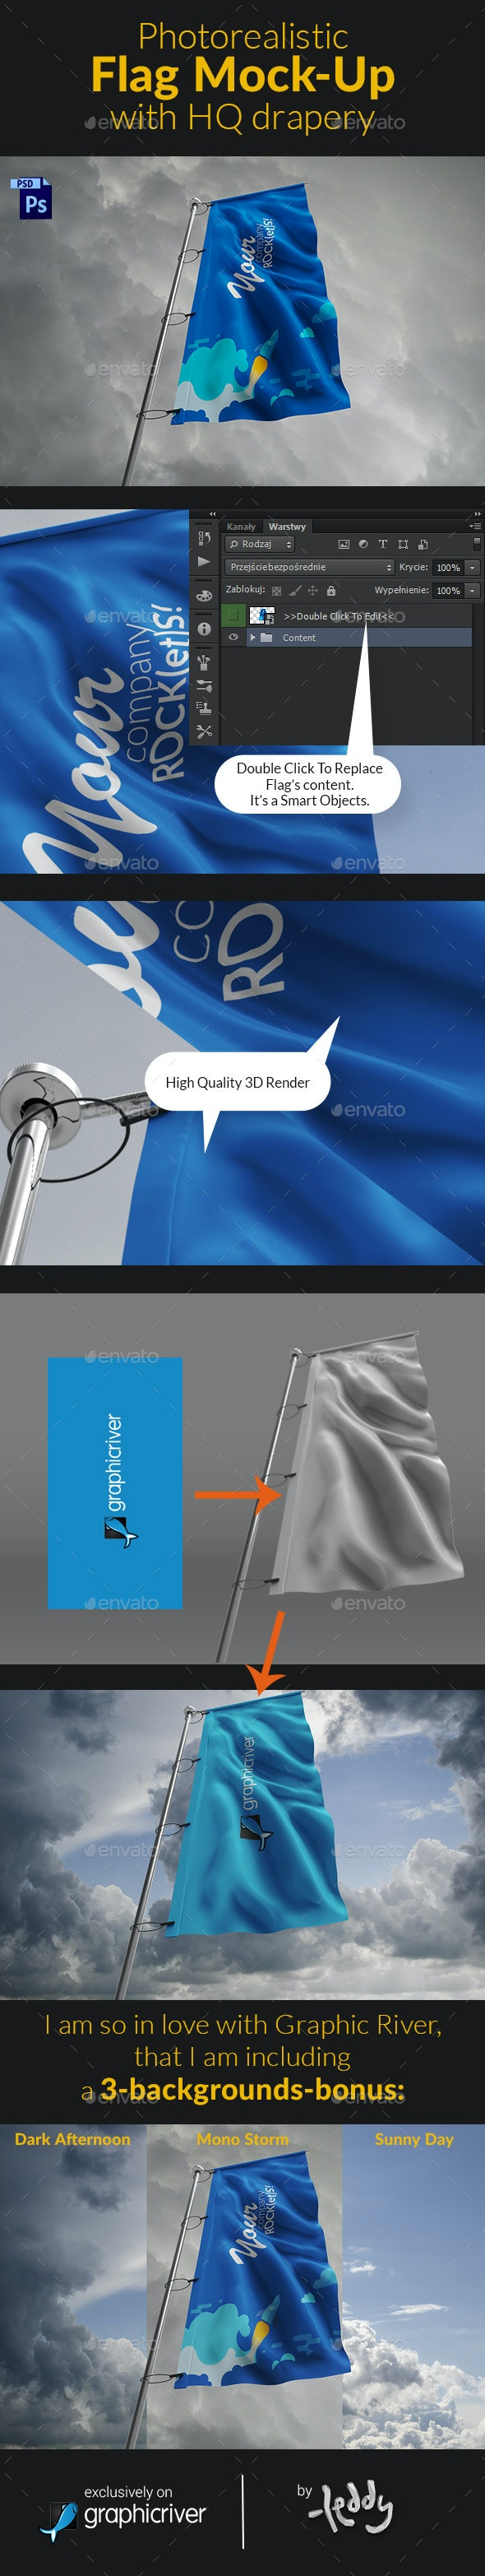 Photorealistic Flag Mock-Up with HQ drapery - Signage Print